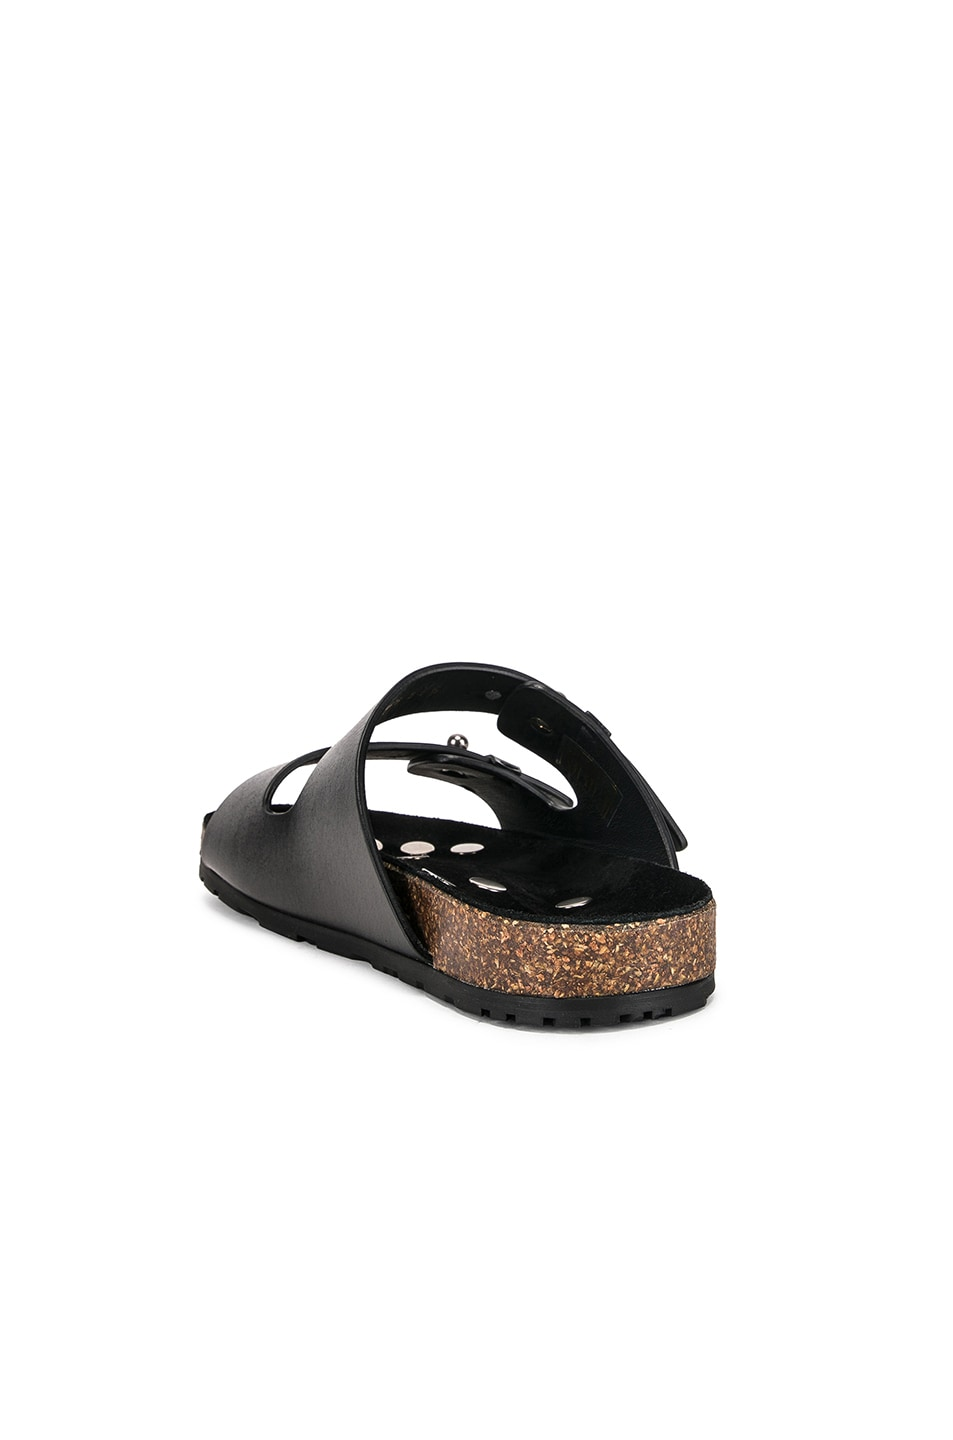 Image 3 of Saint Laurent Jimmy Sandals in Black